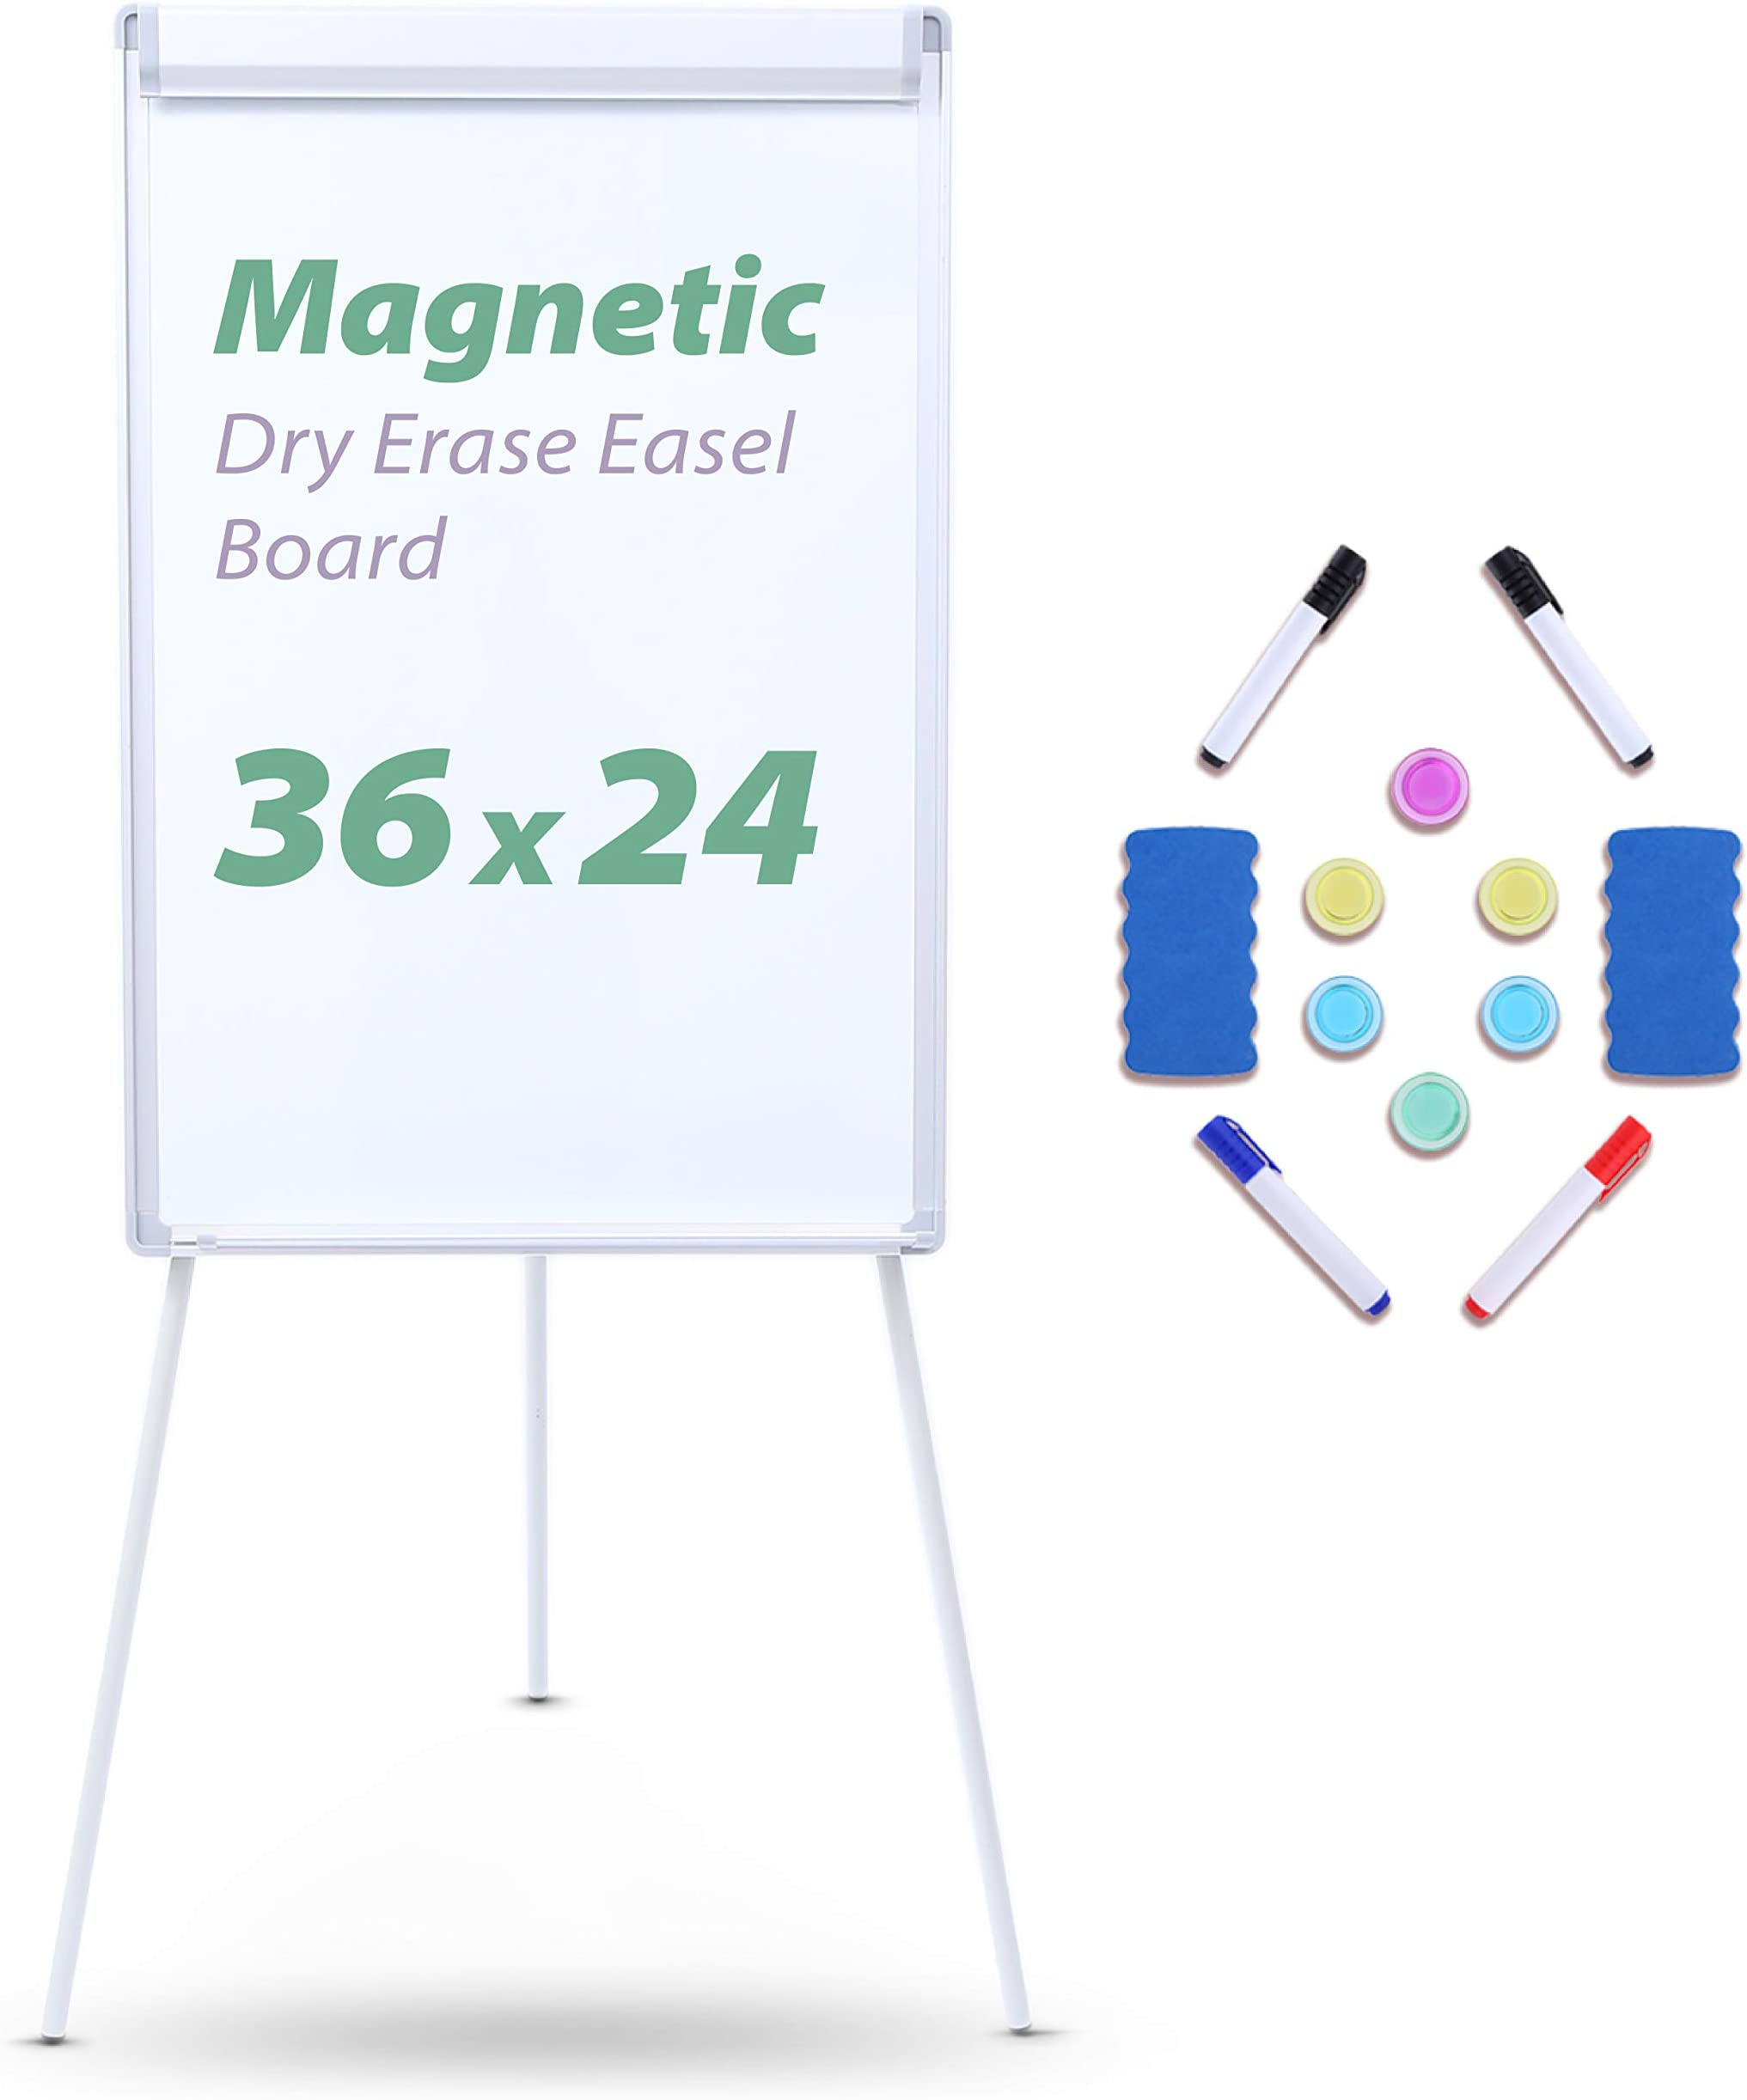 Easel Stand Whiteboard, Ohuhu 36x24 inch Magnetic Tripod Dry Erase Board, Adjustable Height Light White Board, Stand Flipchart Easel with 4 Dry Erase Markers, 2 Erasers and 6 Magnets for Office, Home